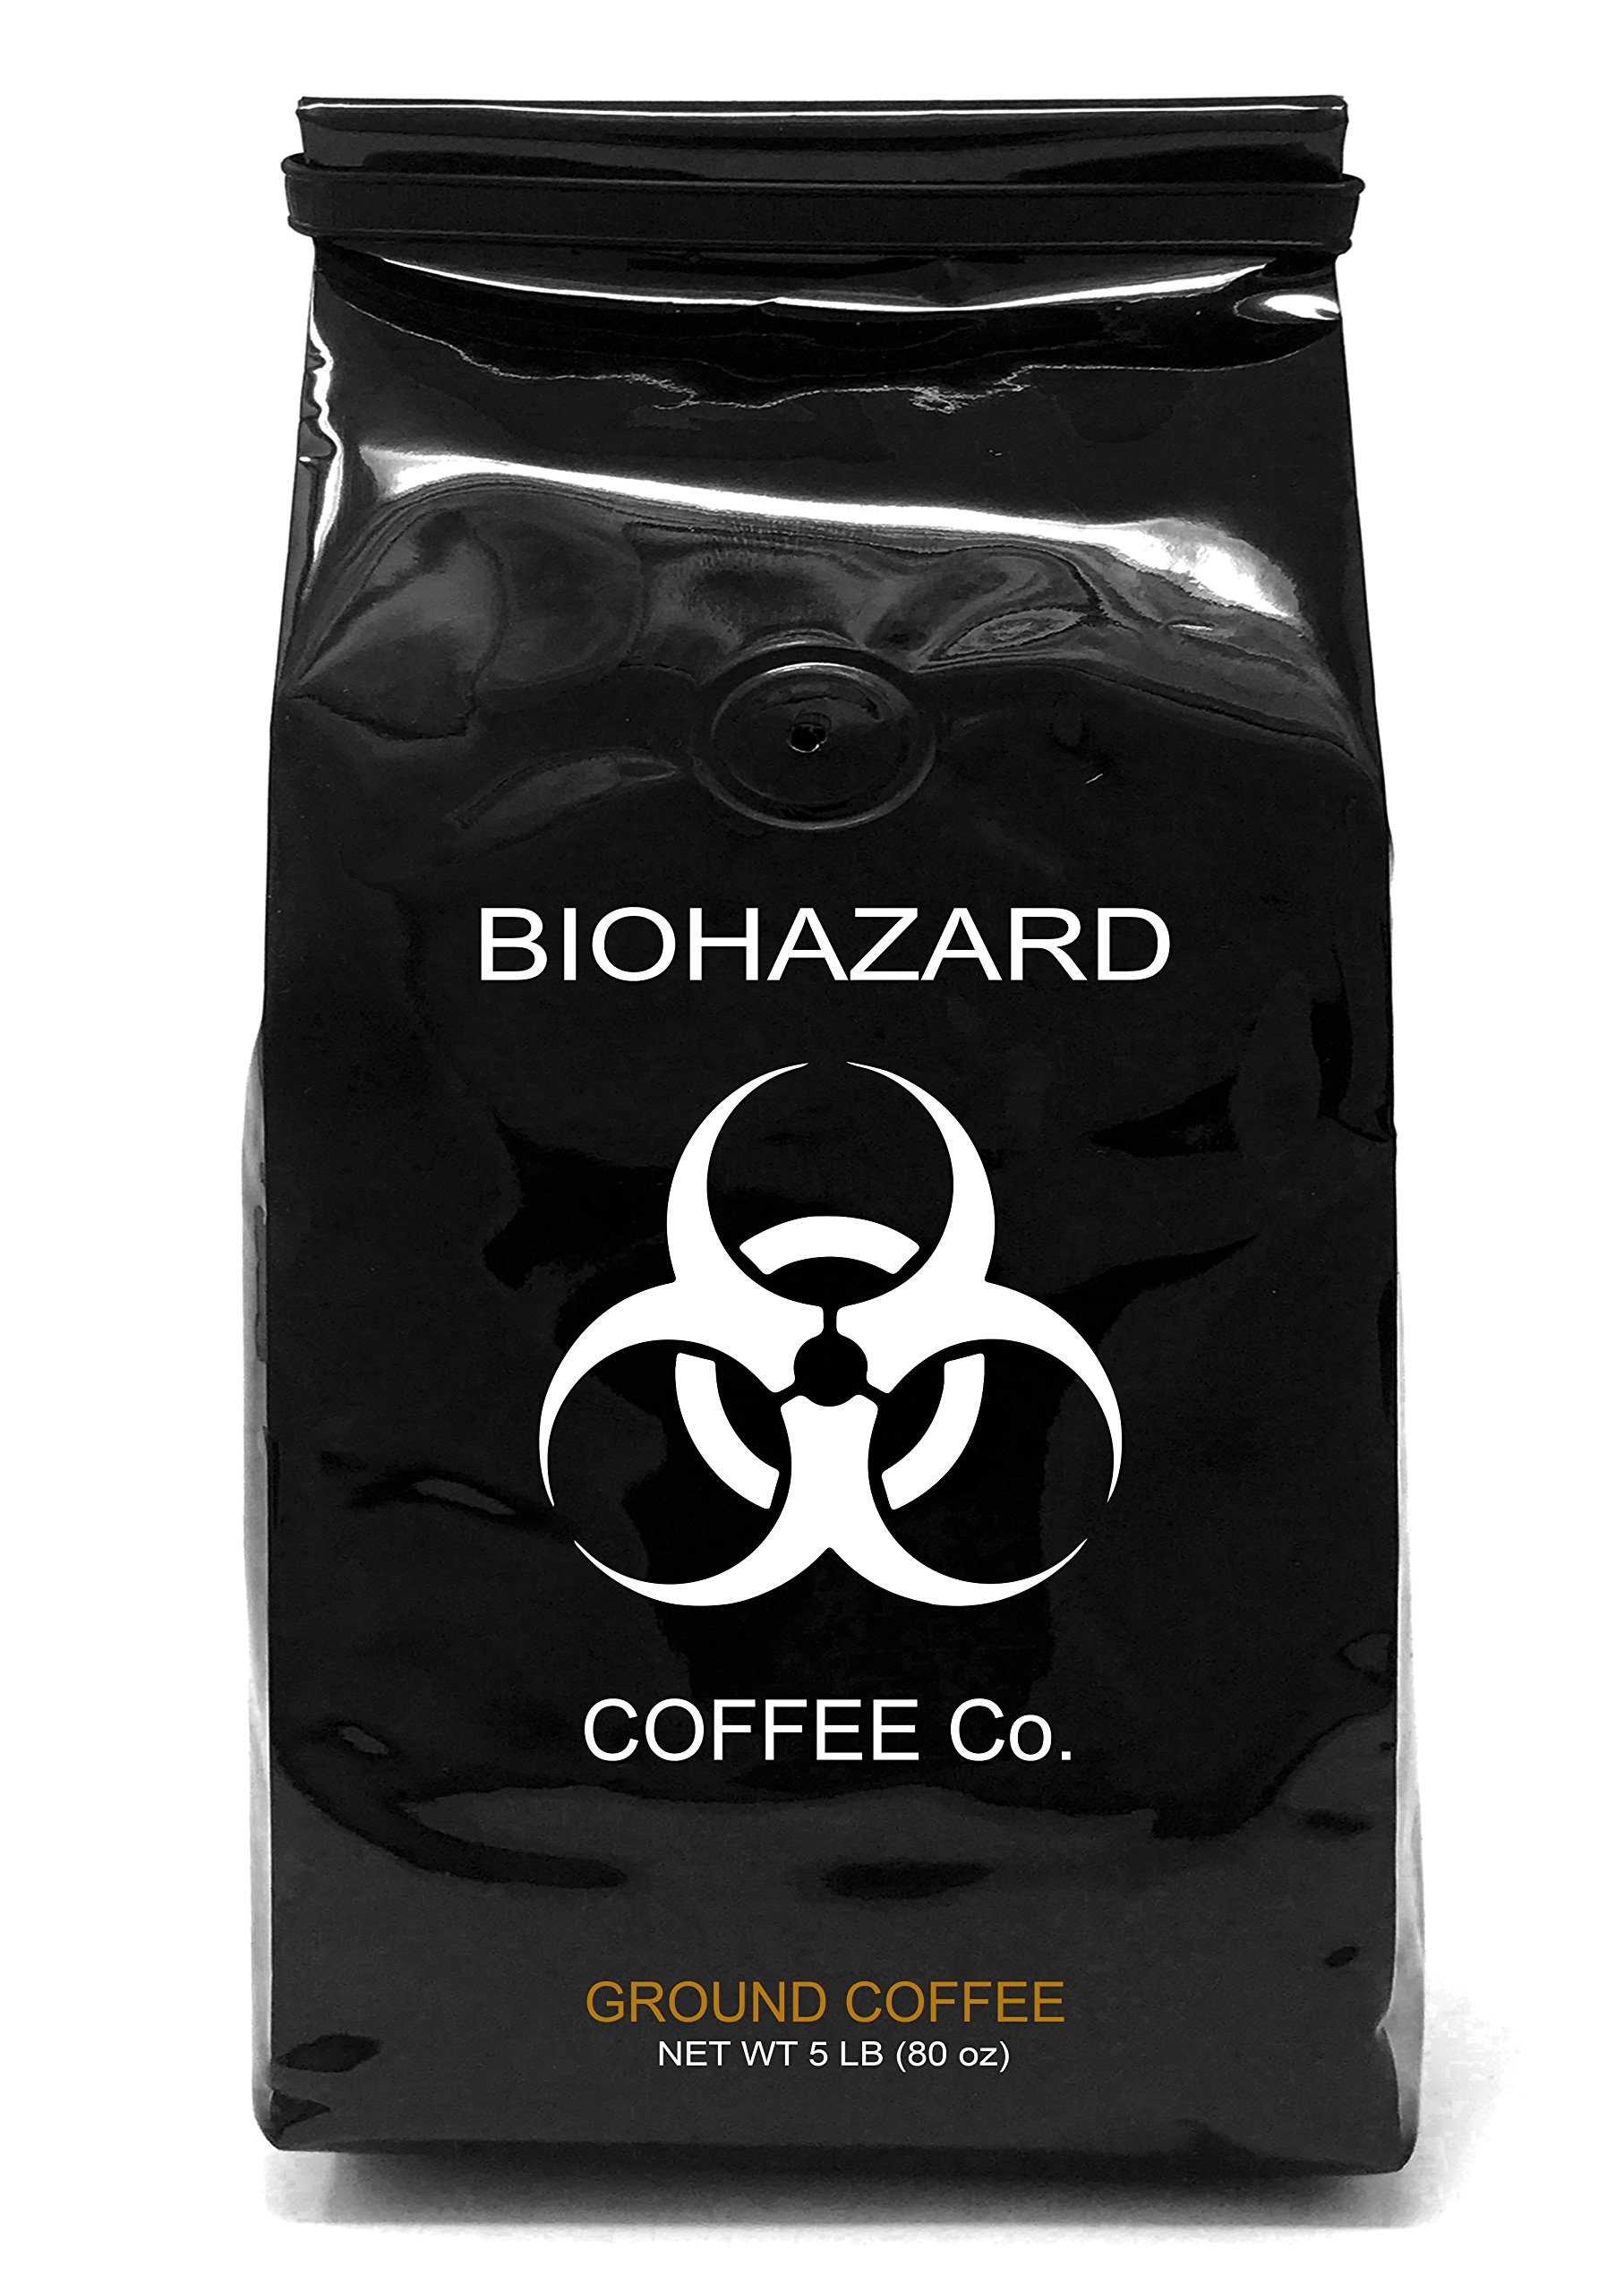 Biohazard Ground Coffee, The World's Strongest Coffee 928 mg Caffeine (5 lb) by Biohazard Coffee Co.